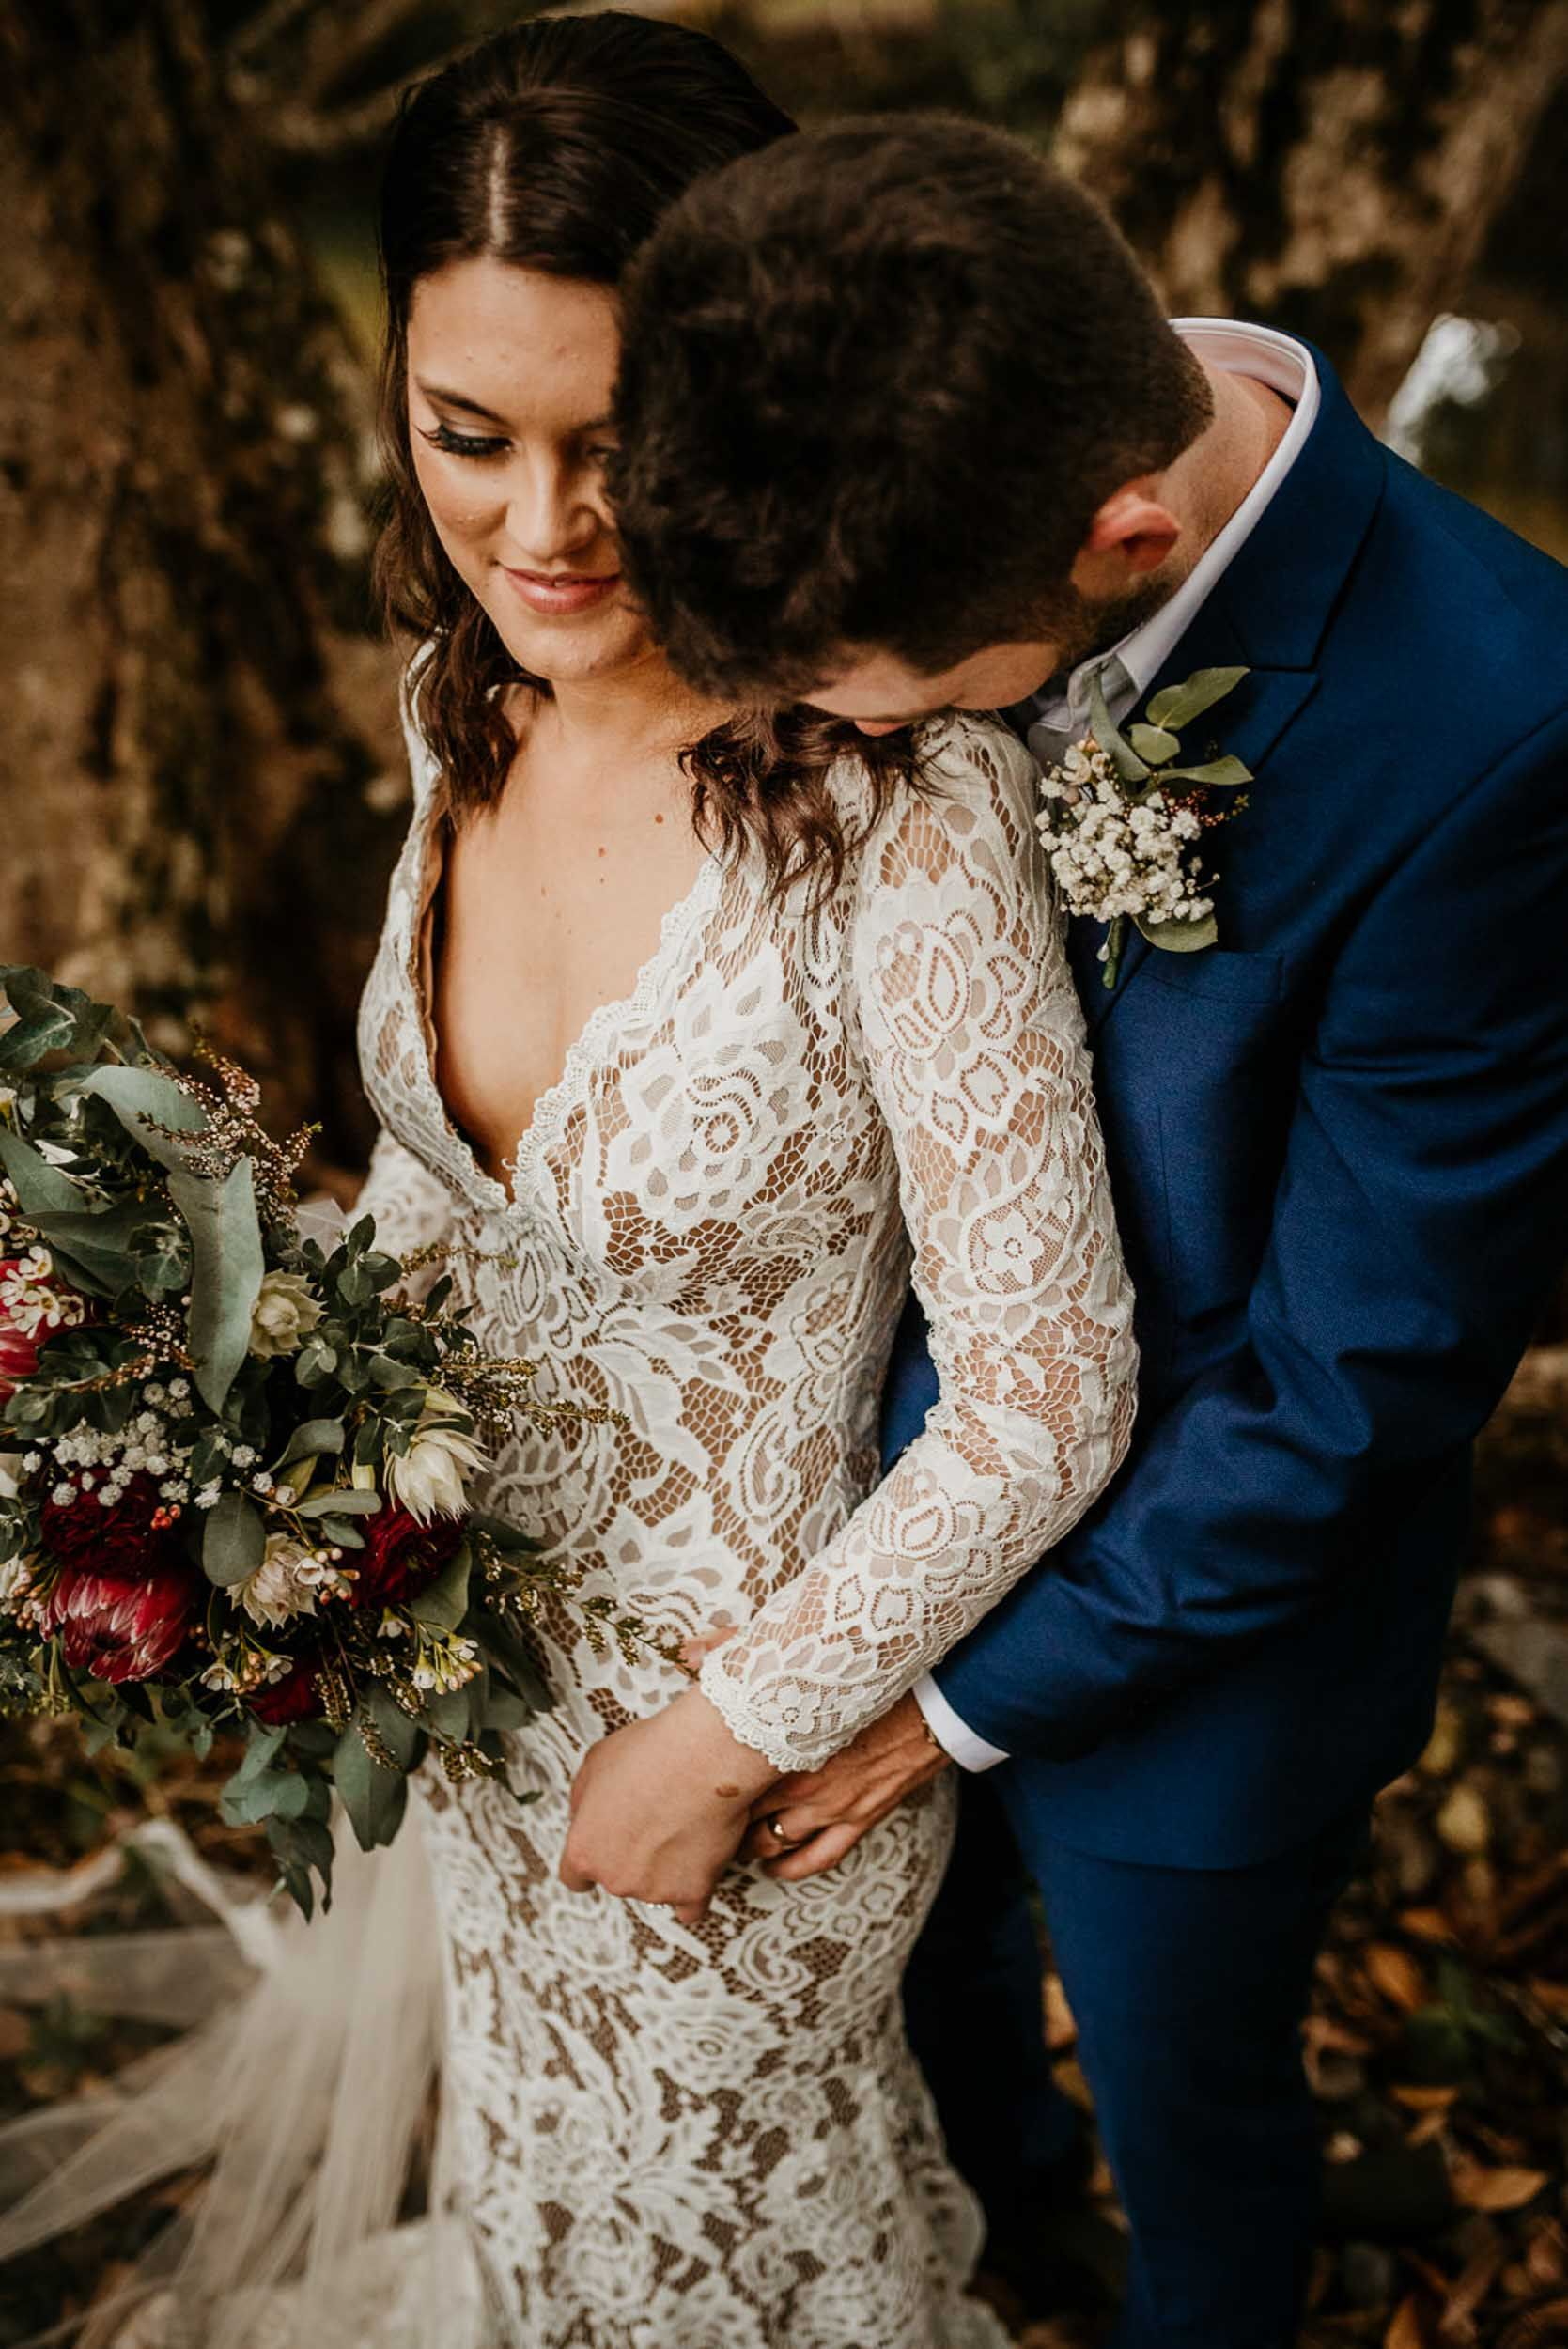 Hair And Makeup Inspiration For Bride Portrait Photos Cairns Queensland Wedding Venue Laloli Wedding Dress Floral Bouquet Bride Portrait Wedding Wedding Dj